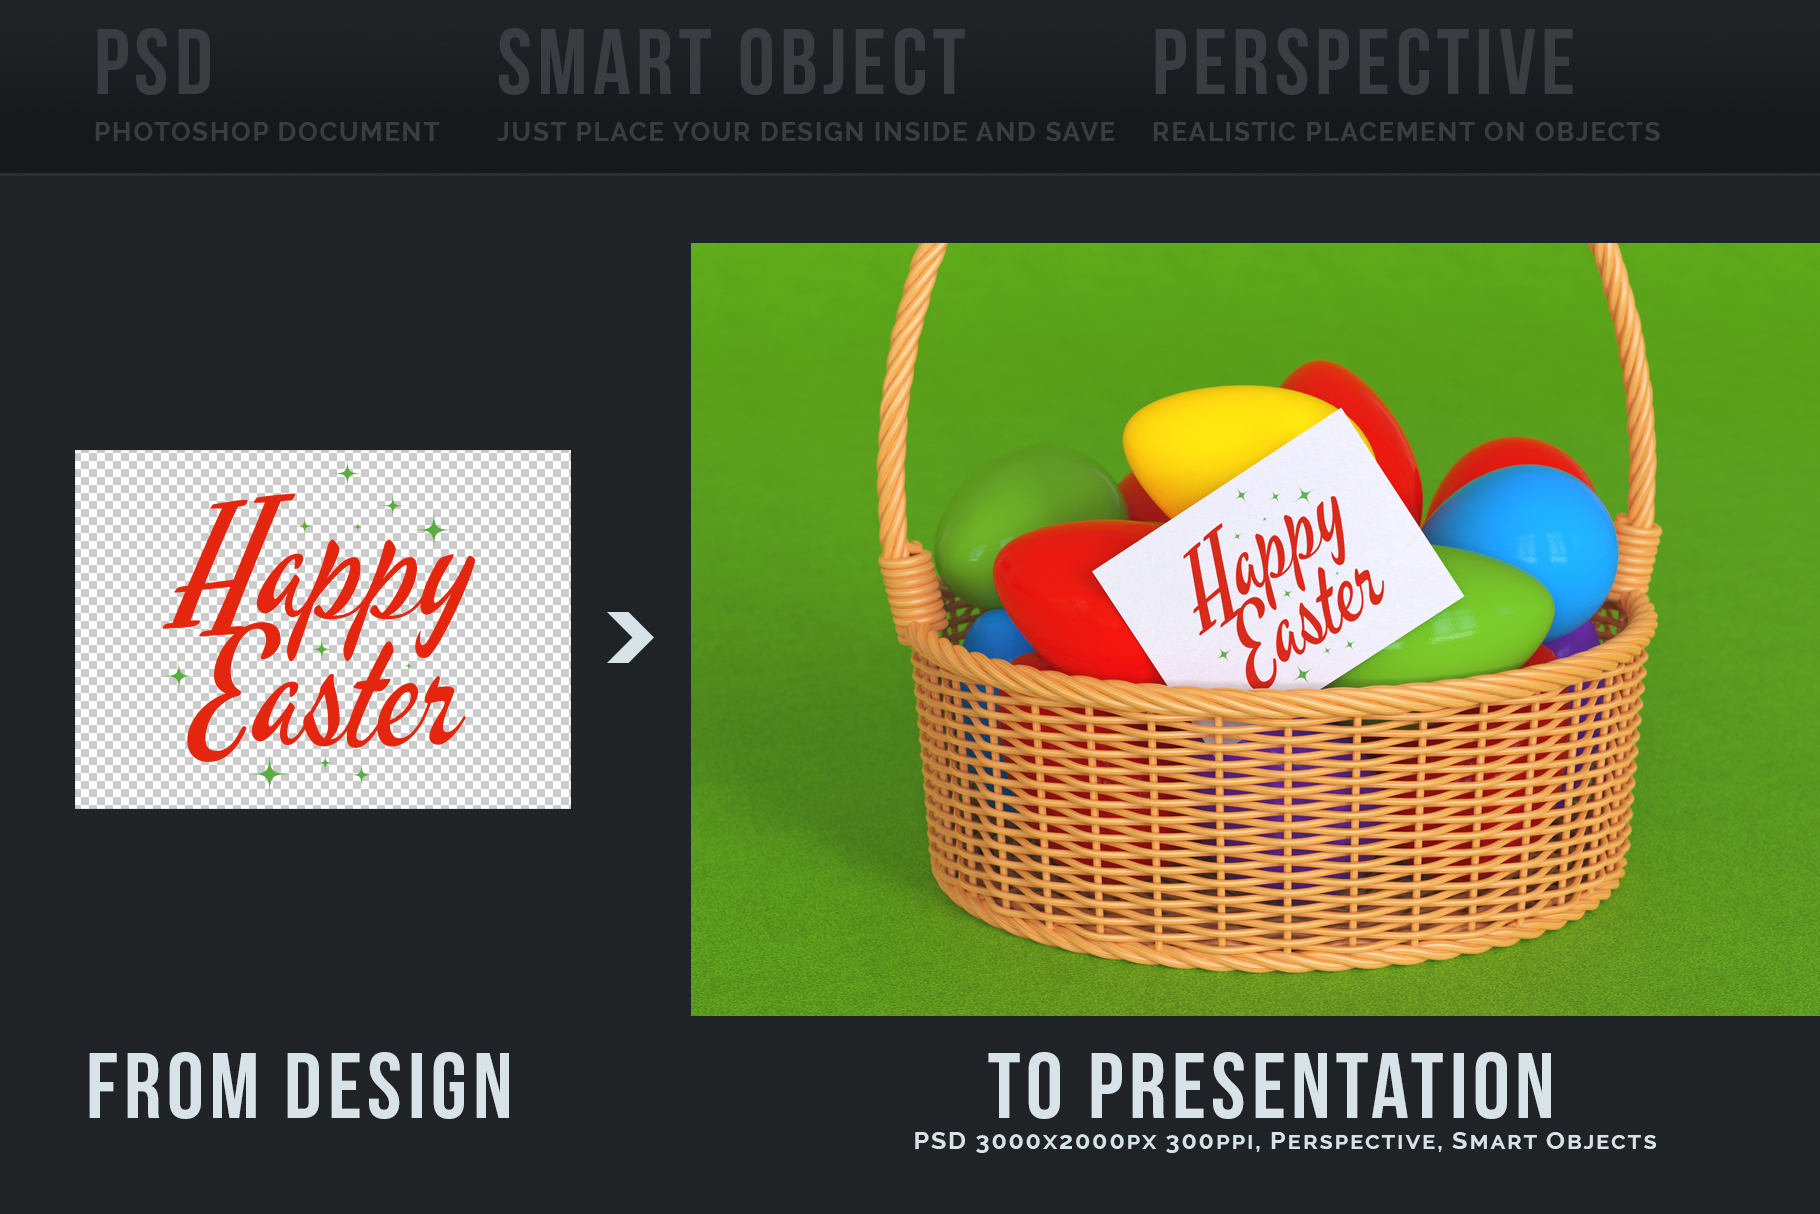 Easter Egg Mockups and Images example image 8